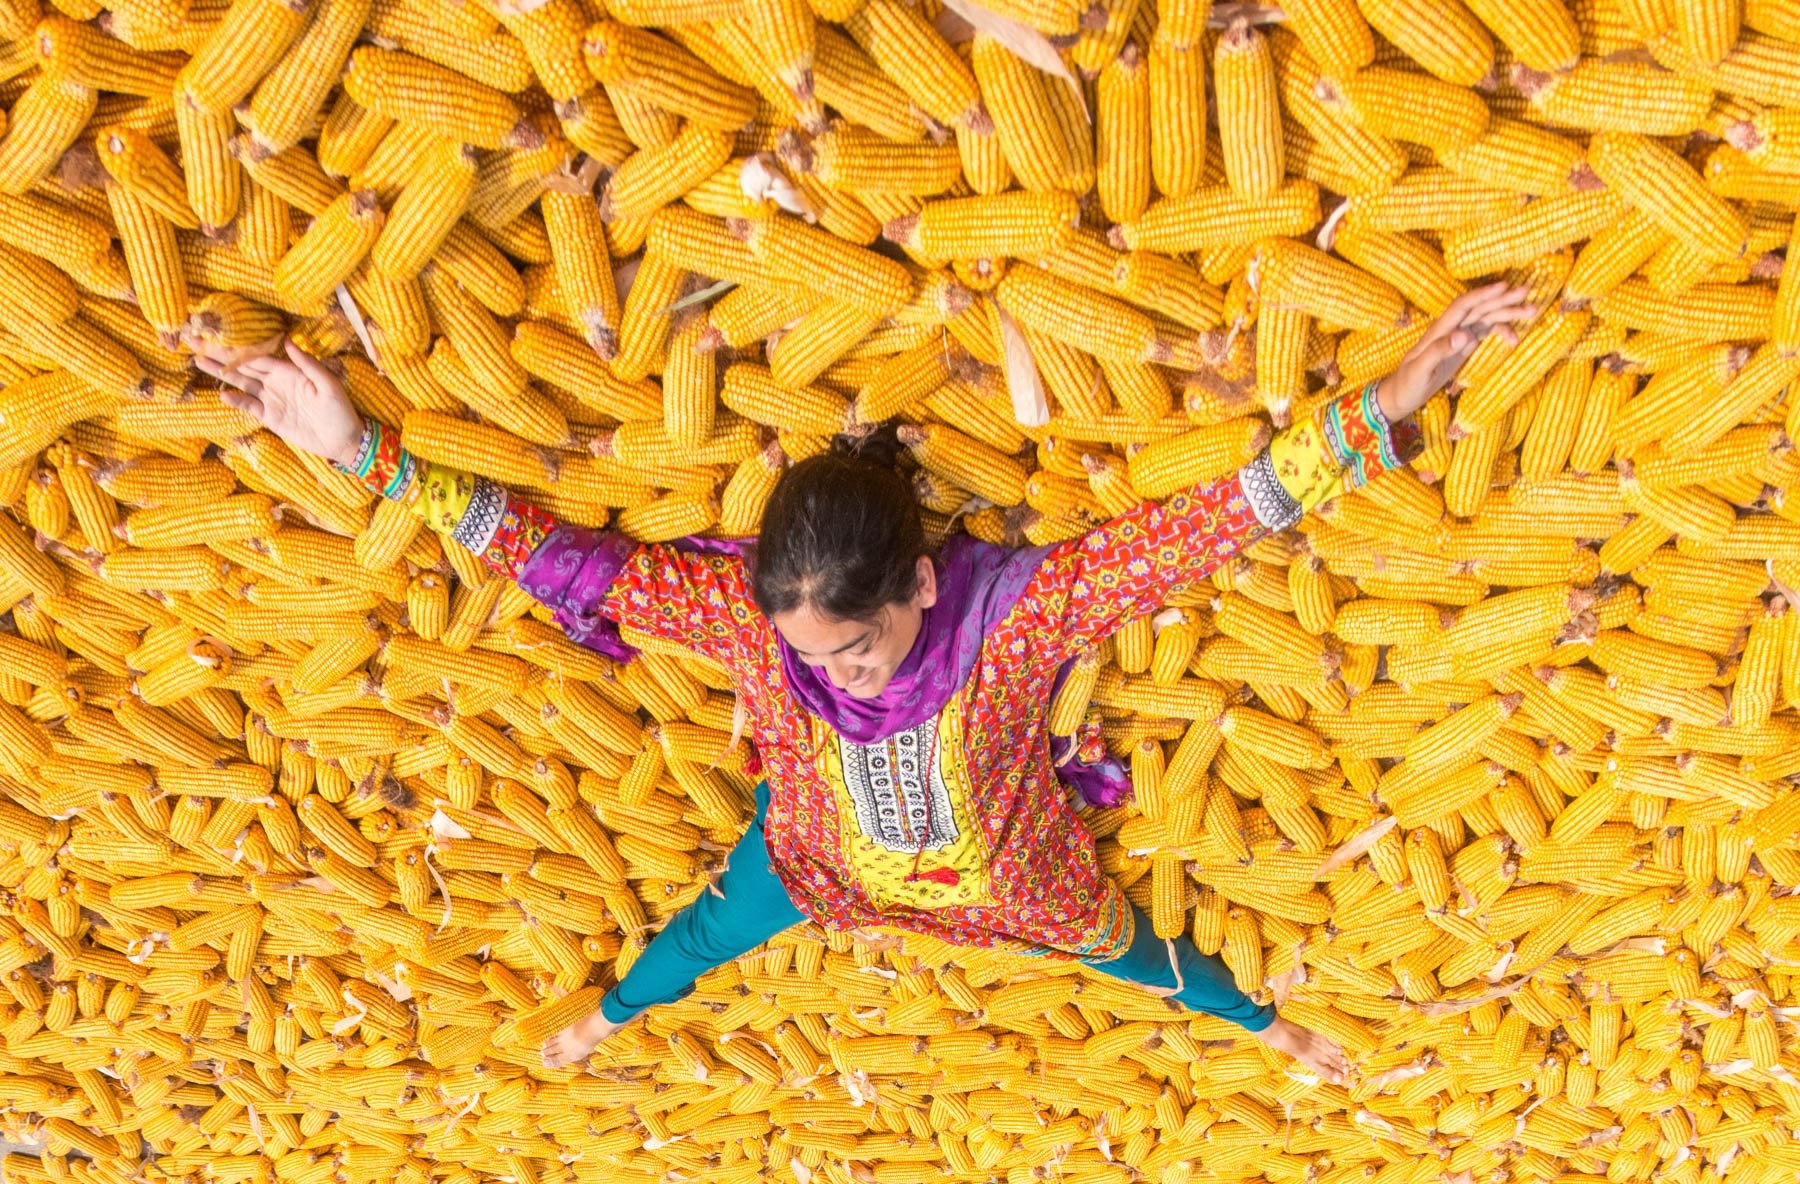 About Lost With Purpose Travel Blog - Bathing in corn in Pakistan